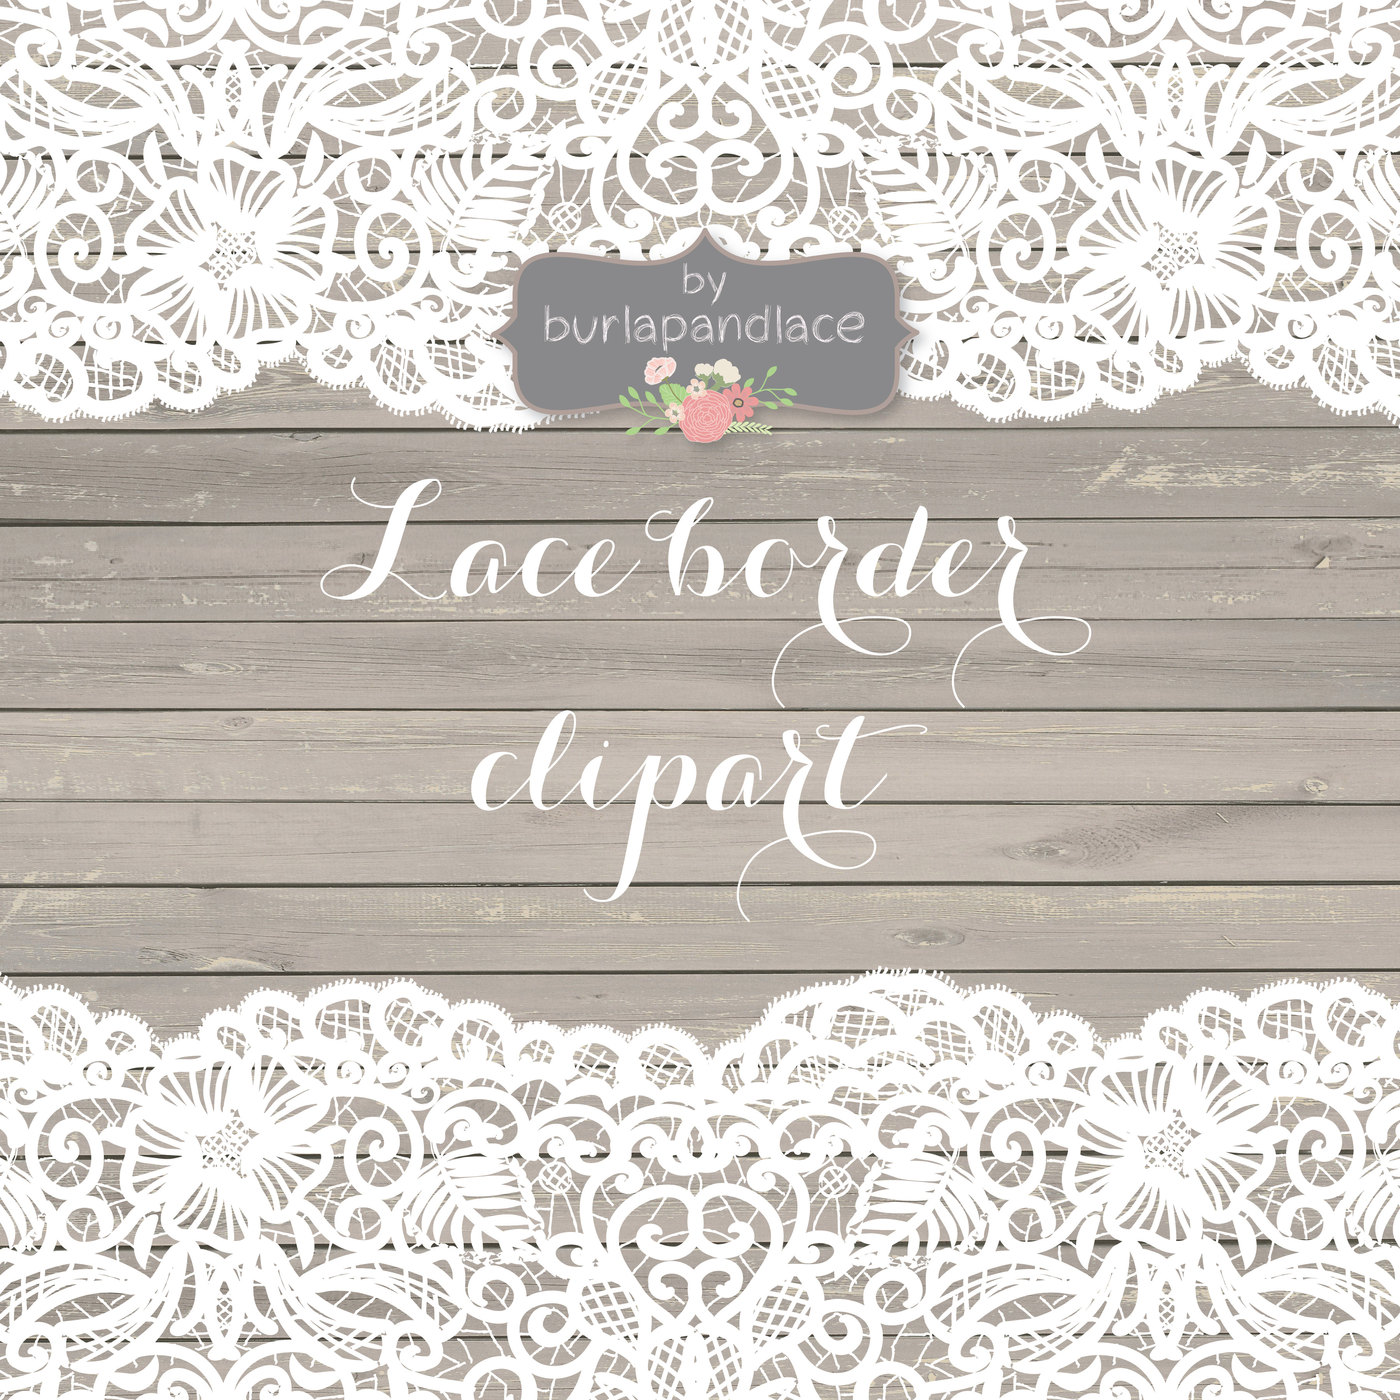 Vintage Flower clipart rustic frame Border chic rustic Lace lace